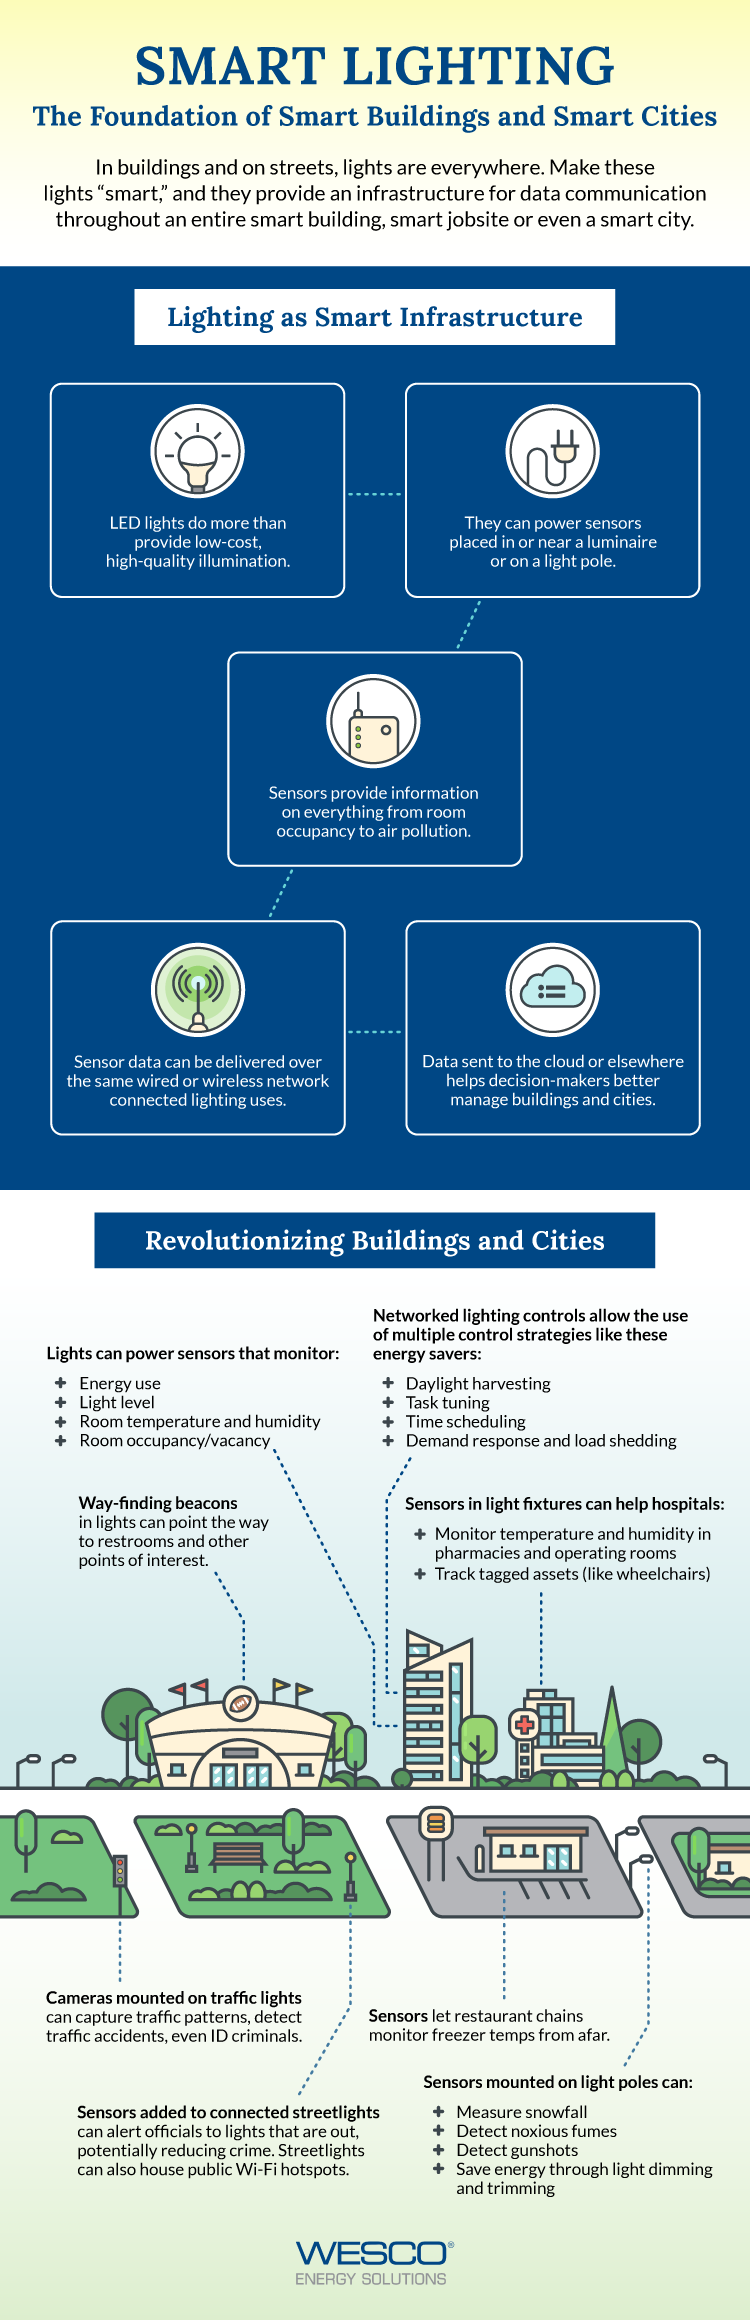 WESCO Smart Lighting Infographic